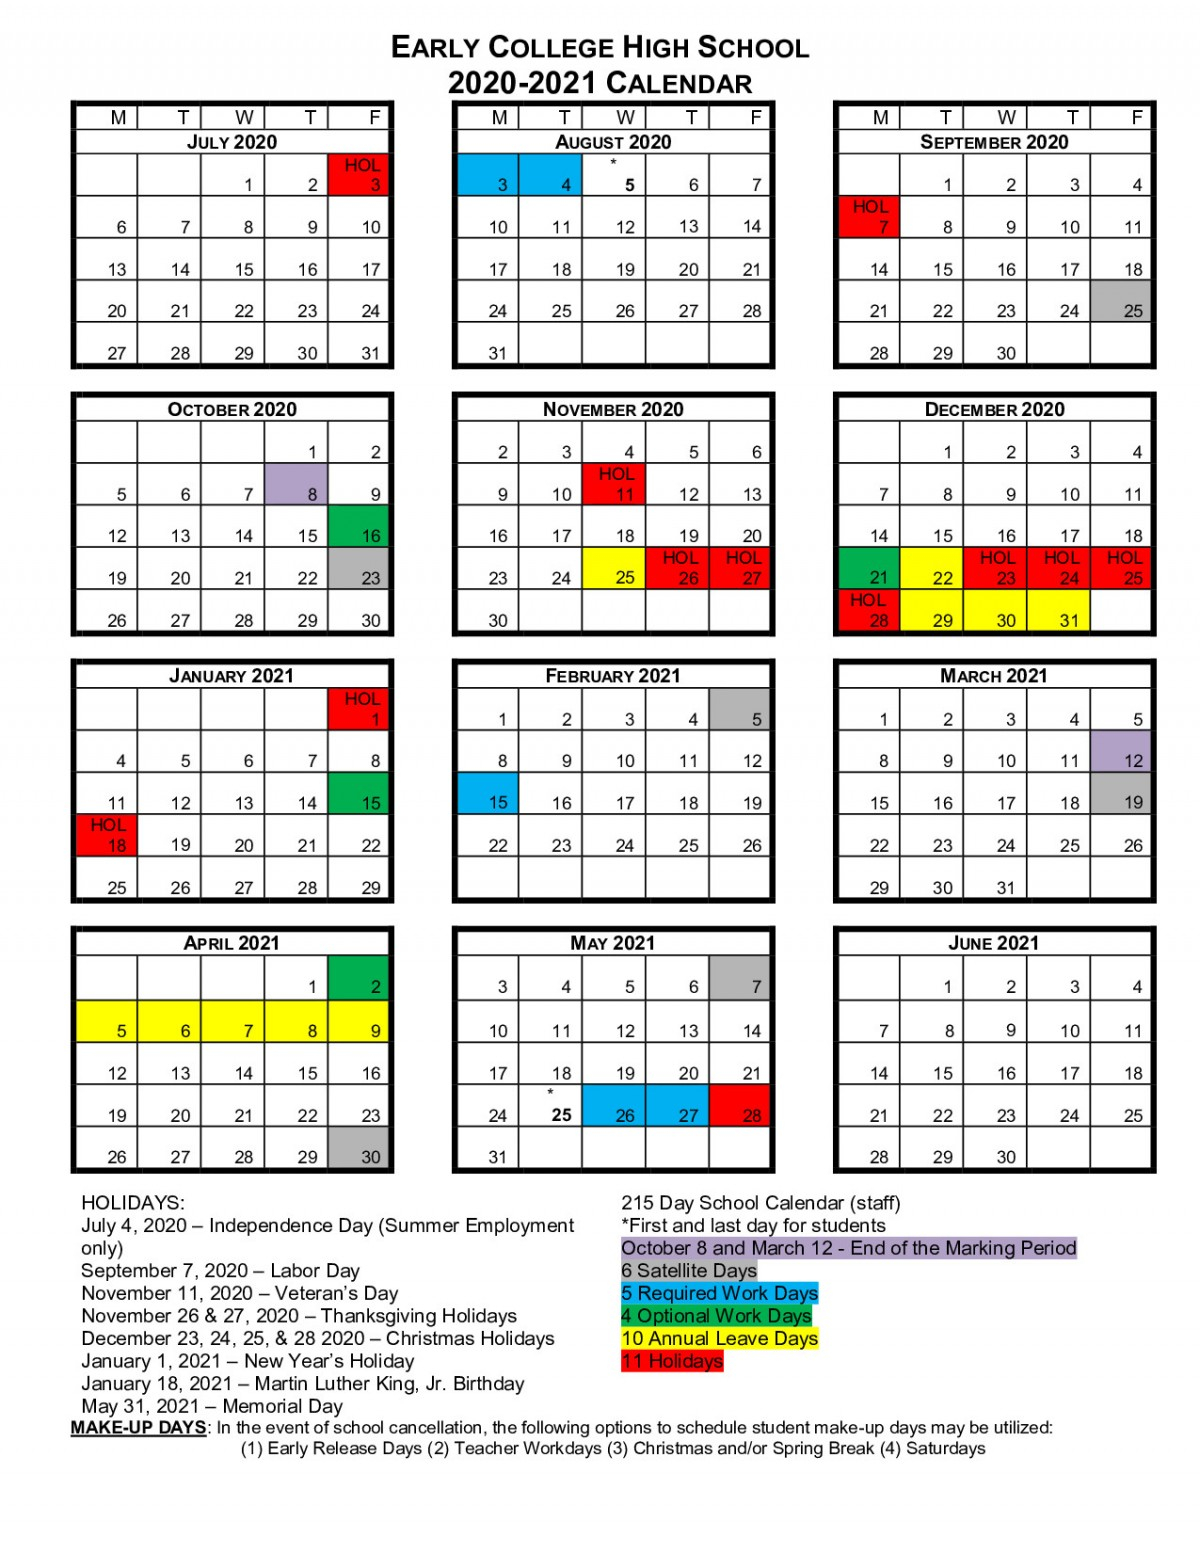 Bcs School Calendars | Beaufort County Schools Throughout William And Mary 2021 20 Calendar